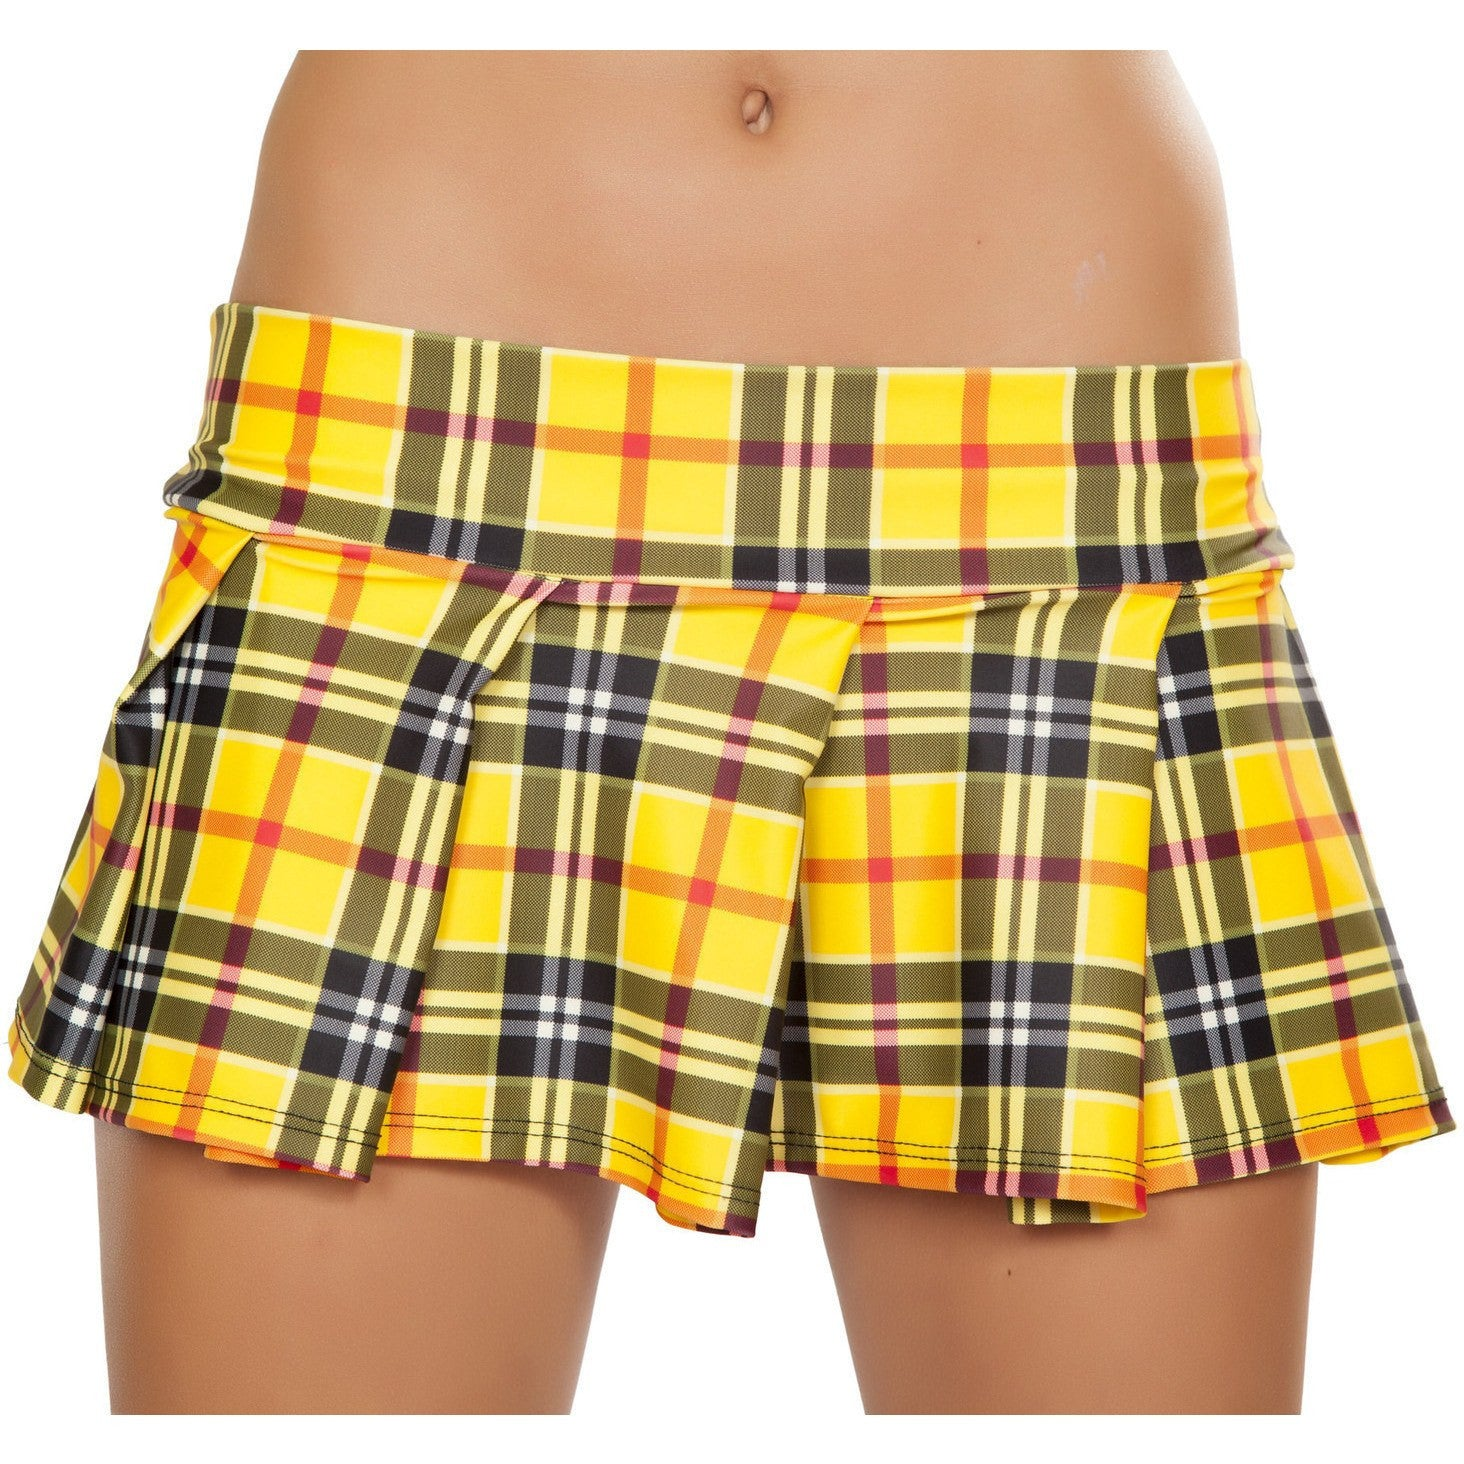 Yellow Plaid Plaid Skirt - Rave Rebel